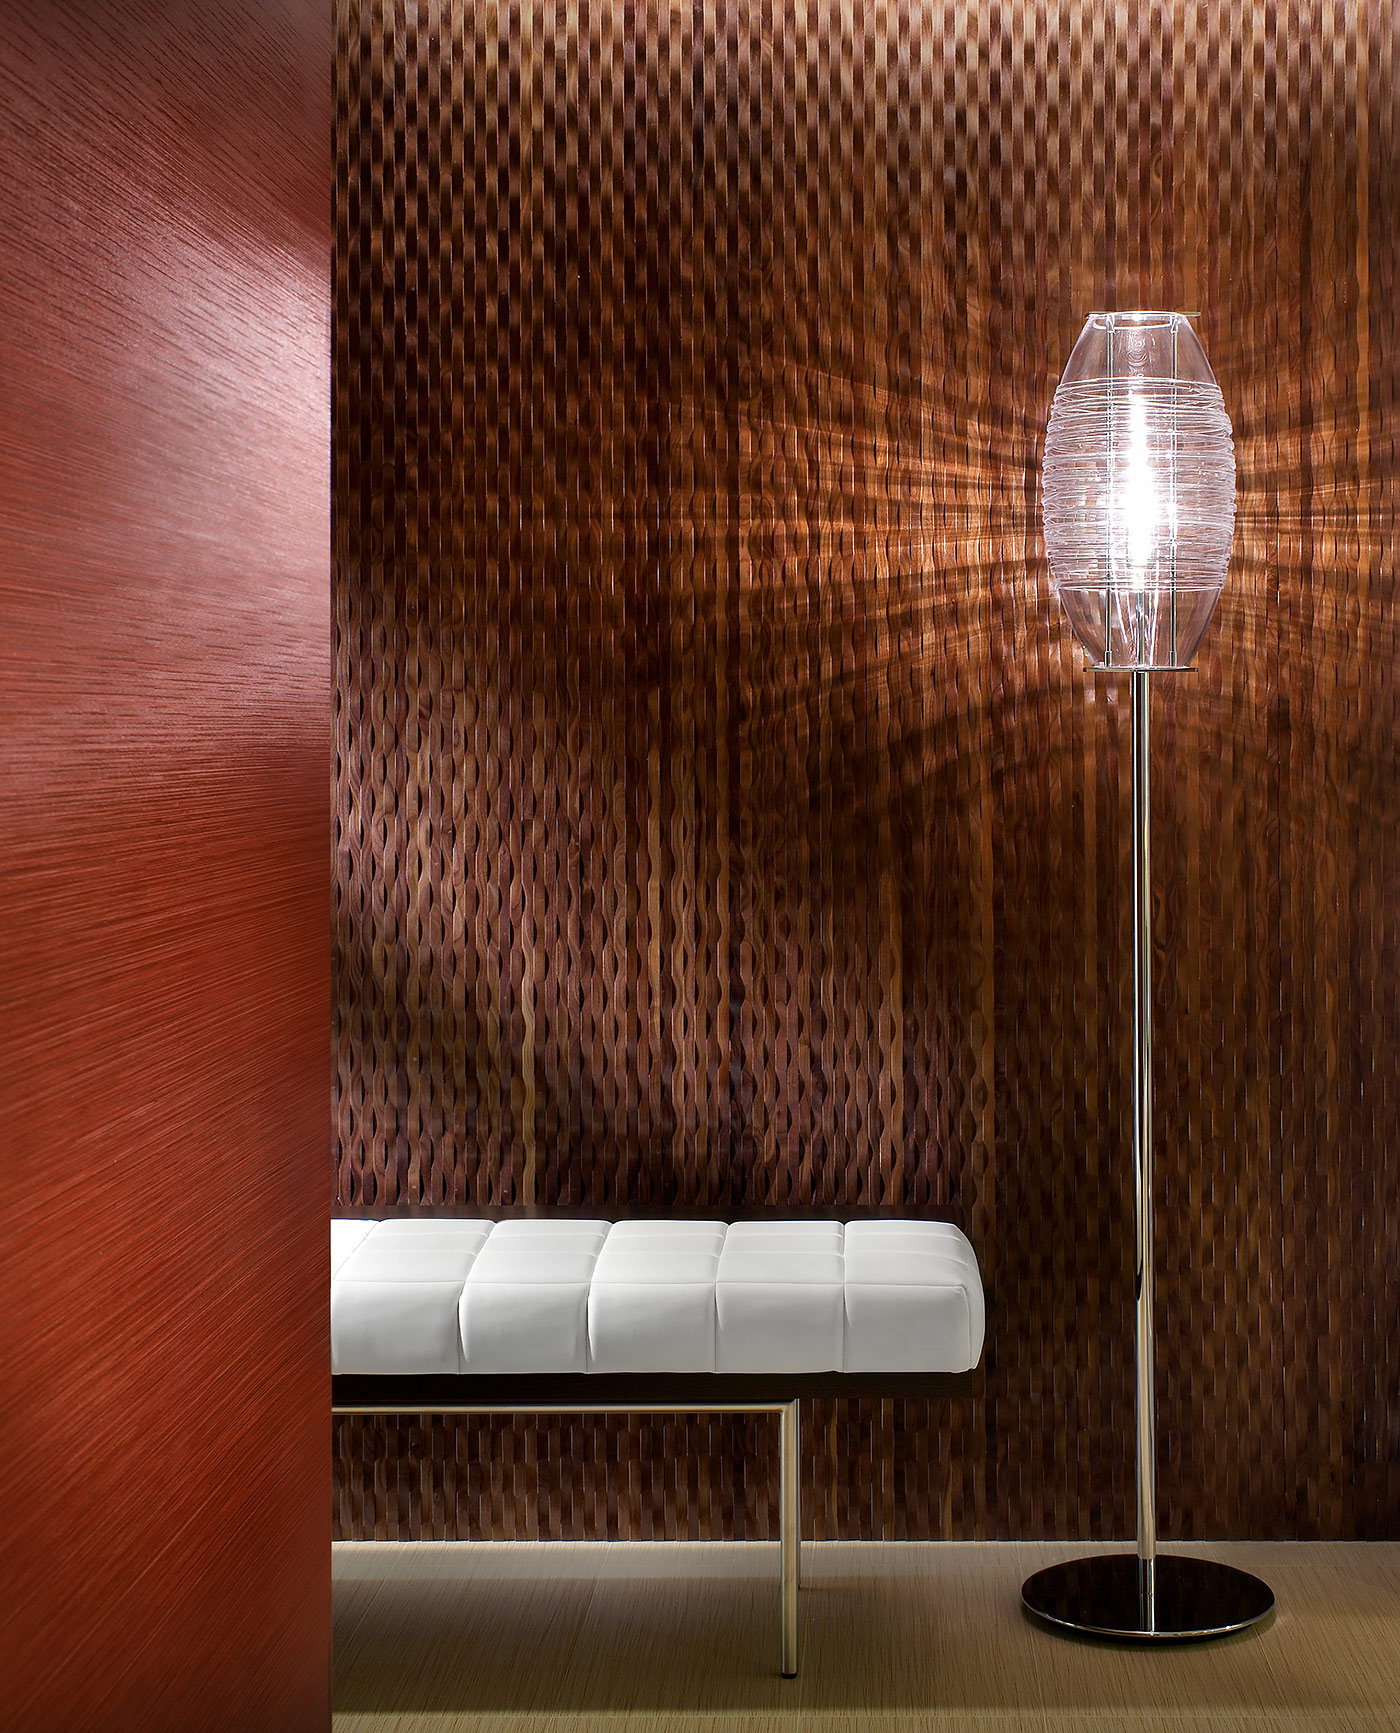 RTKL-Foyer-Detail-Red-Wallpaper-Torhiere-Floor-Lamp